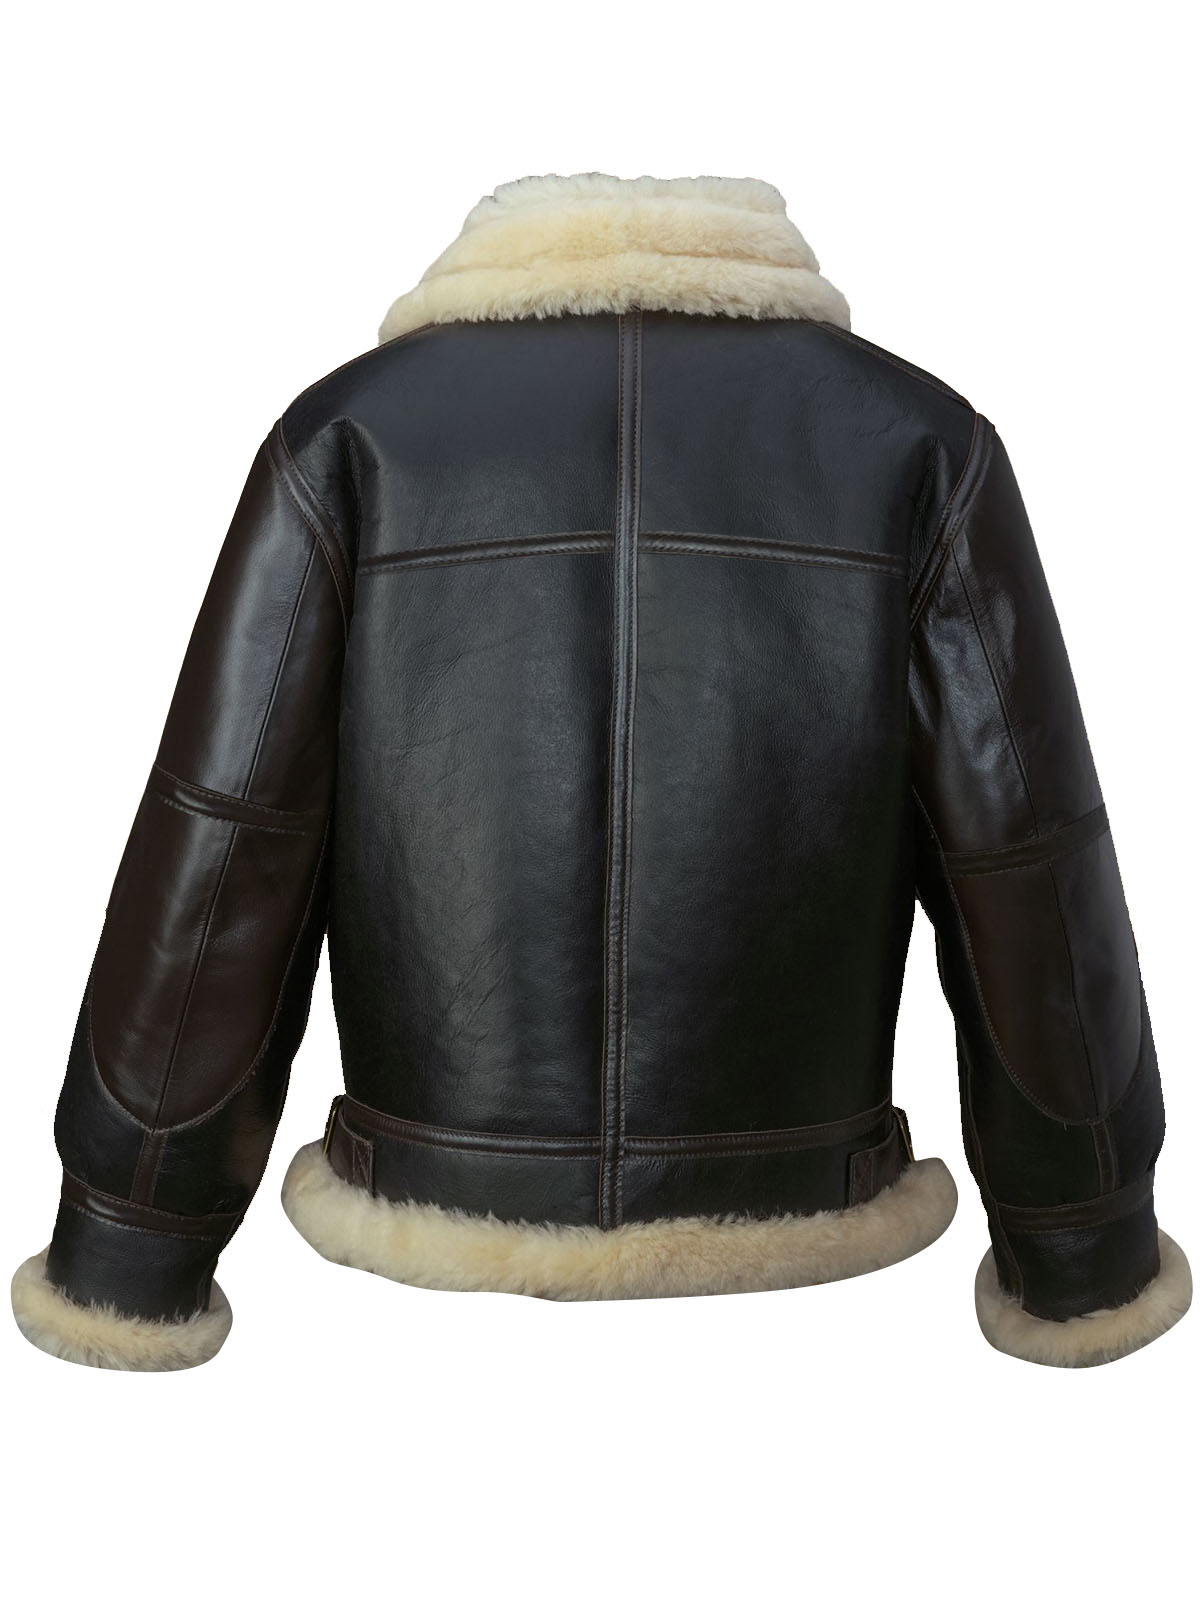 Men's black B3 flying shearling leather jacket